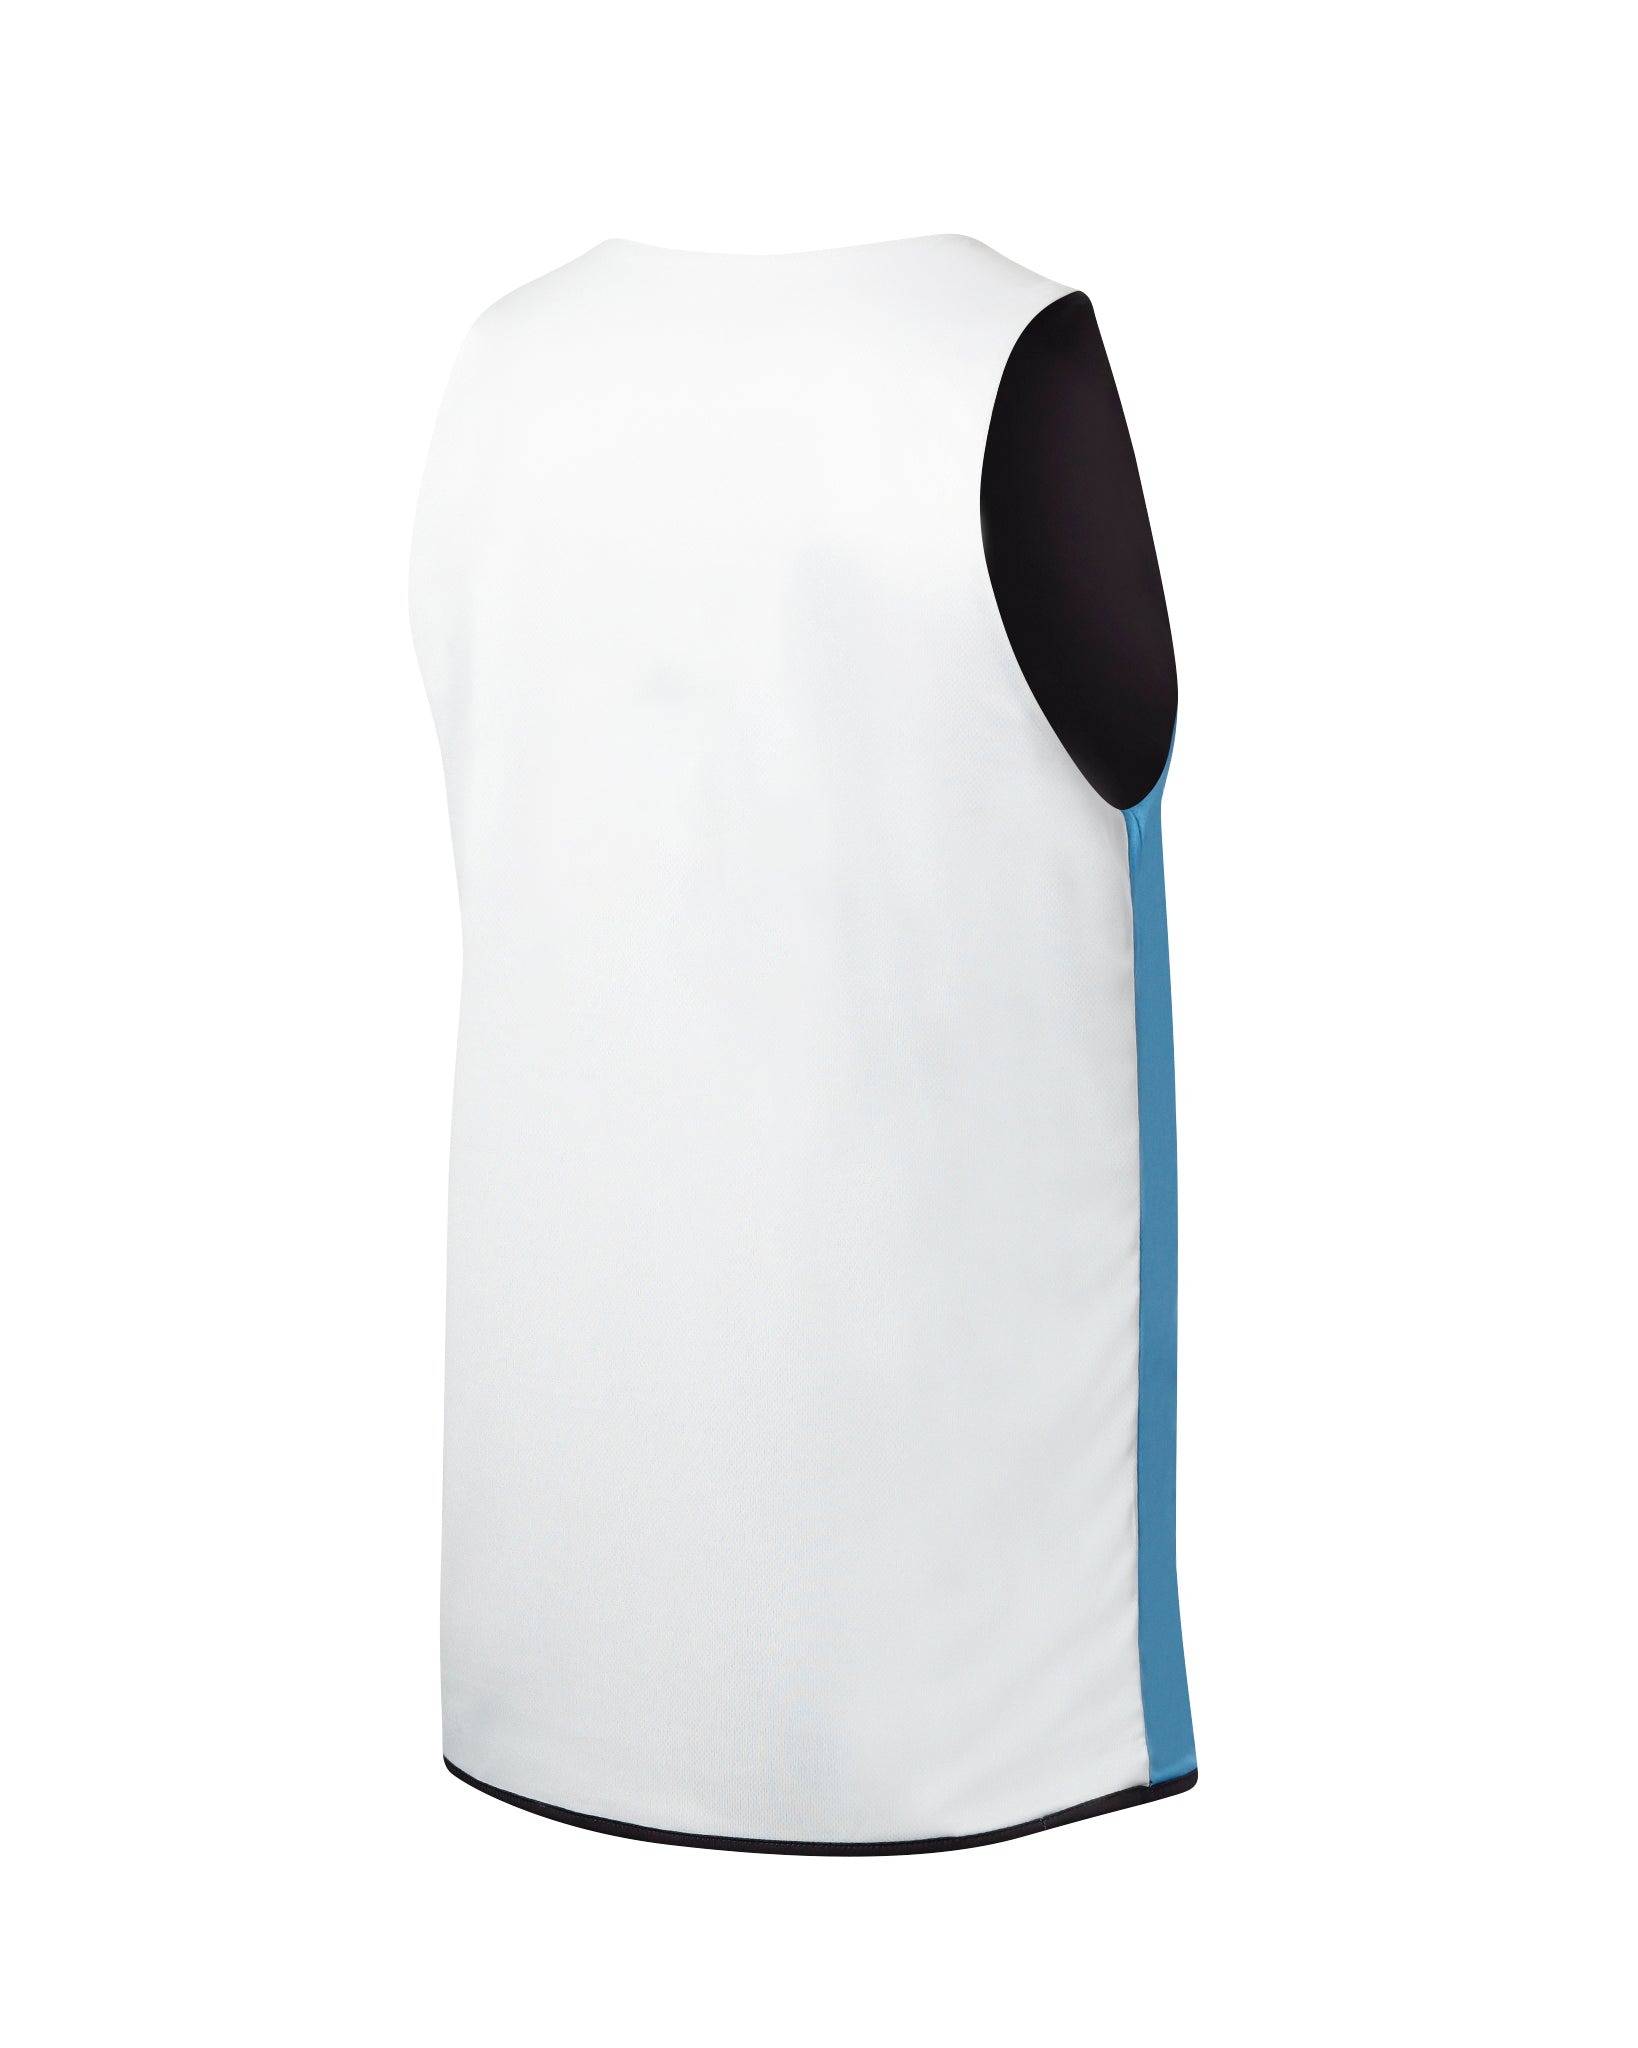 New Zealand Breakers 19/20 Official NBL Reversible Training Jersey